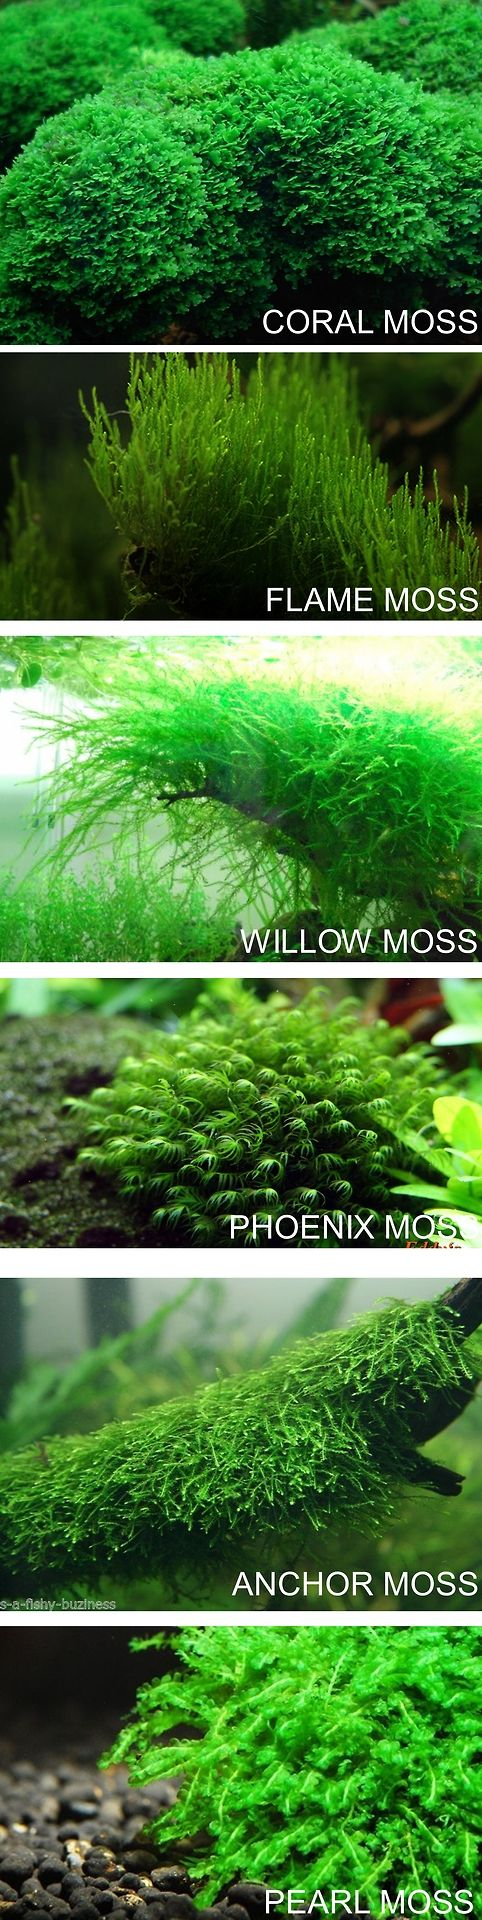 nanocubism 6 mosses you should have in your tank christmas moss is another one of my favs - Christmas Moss